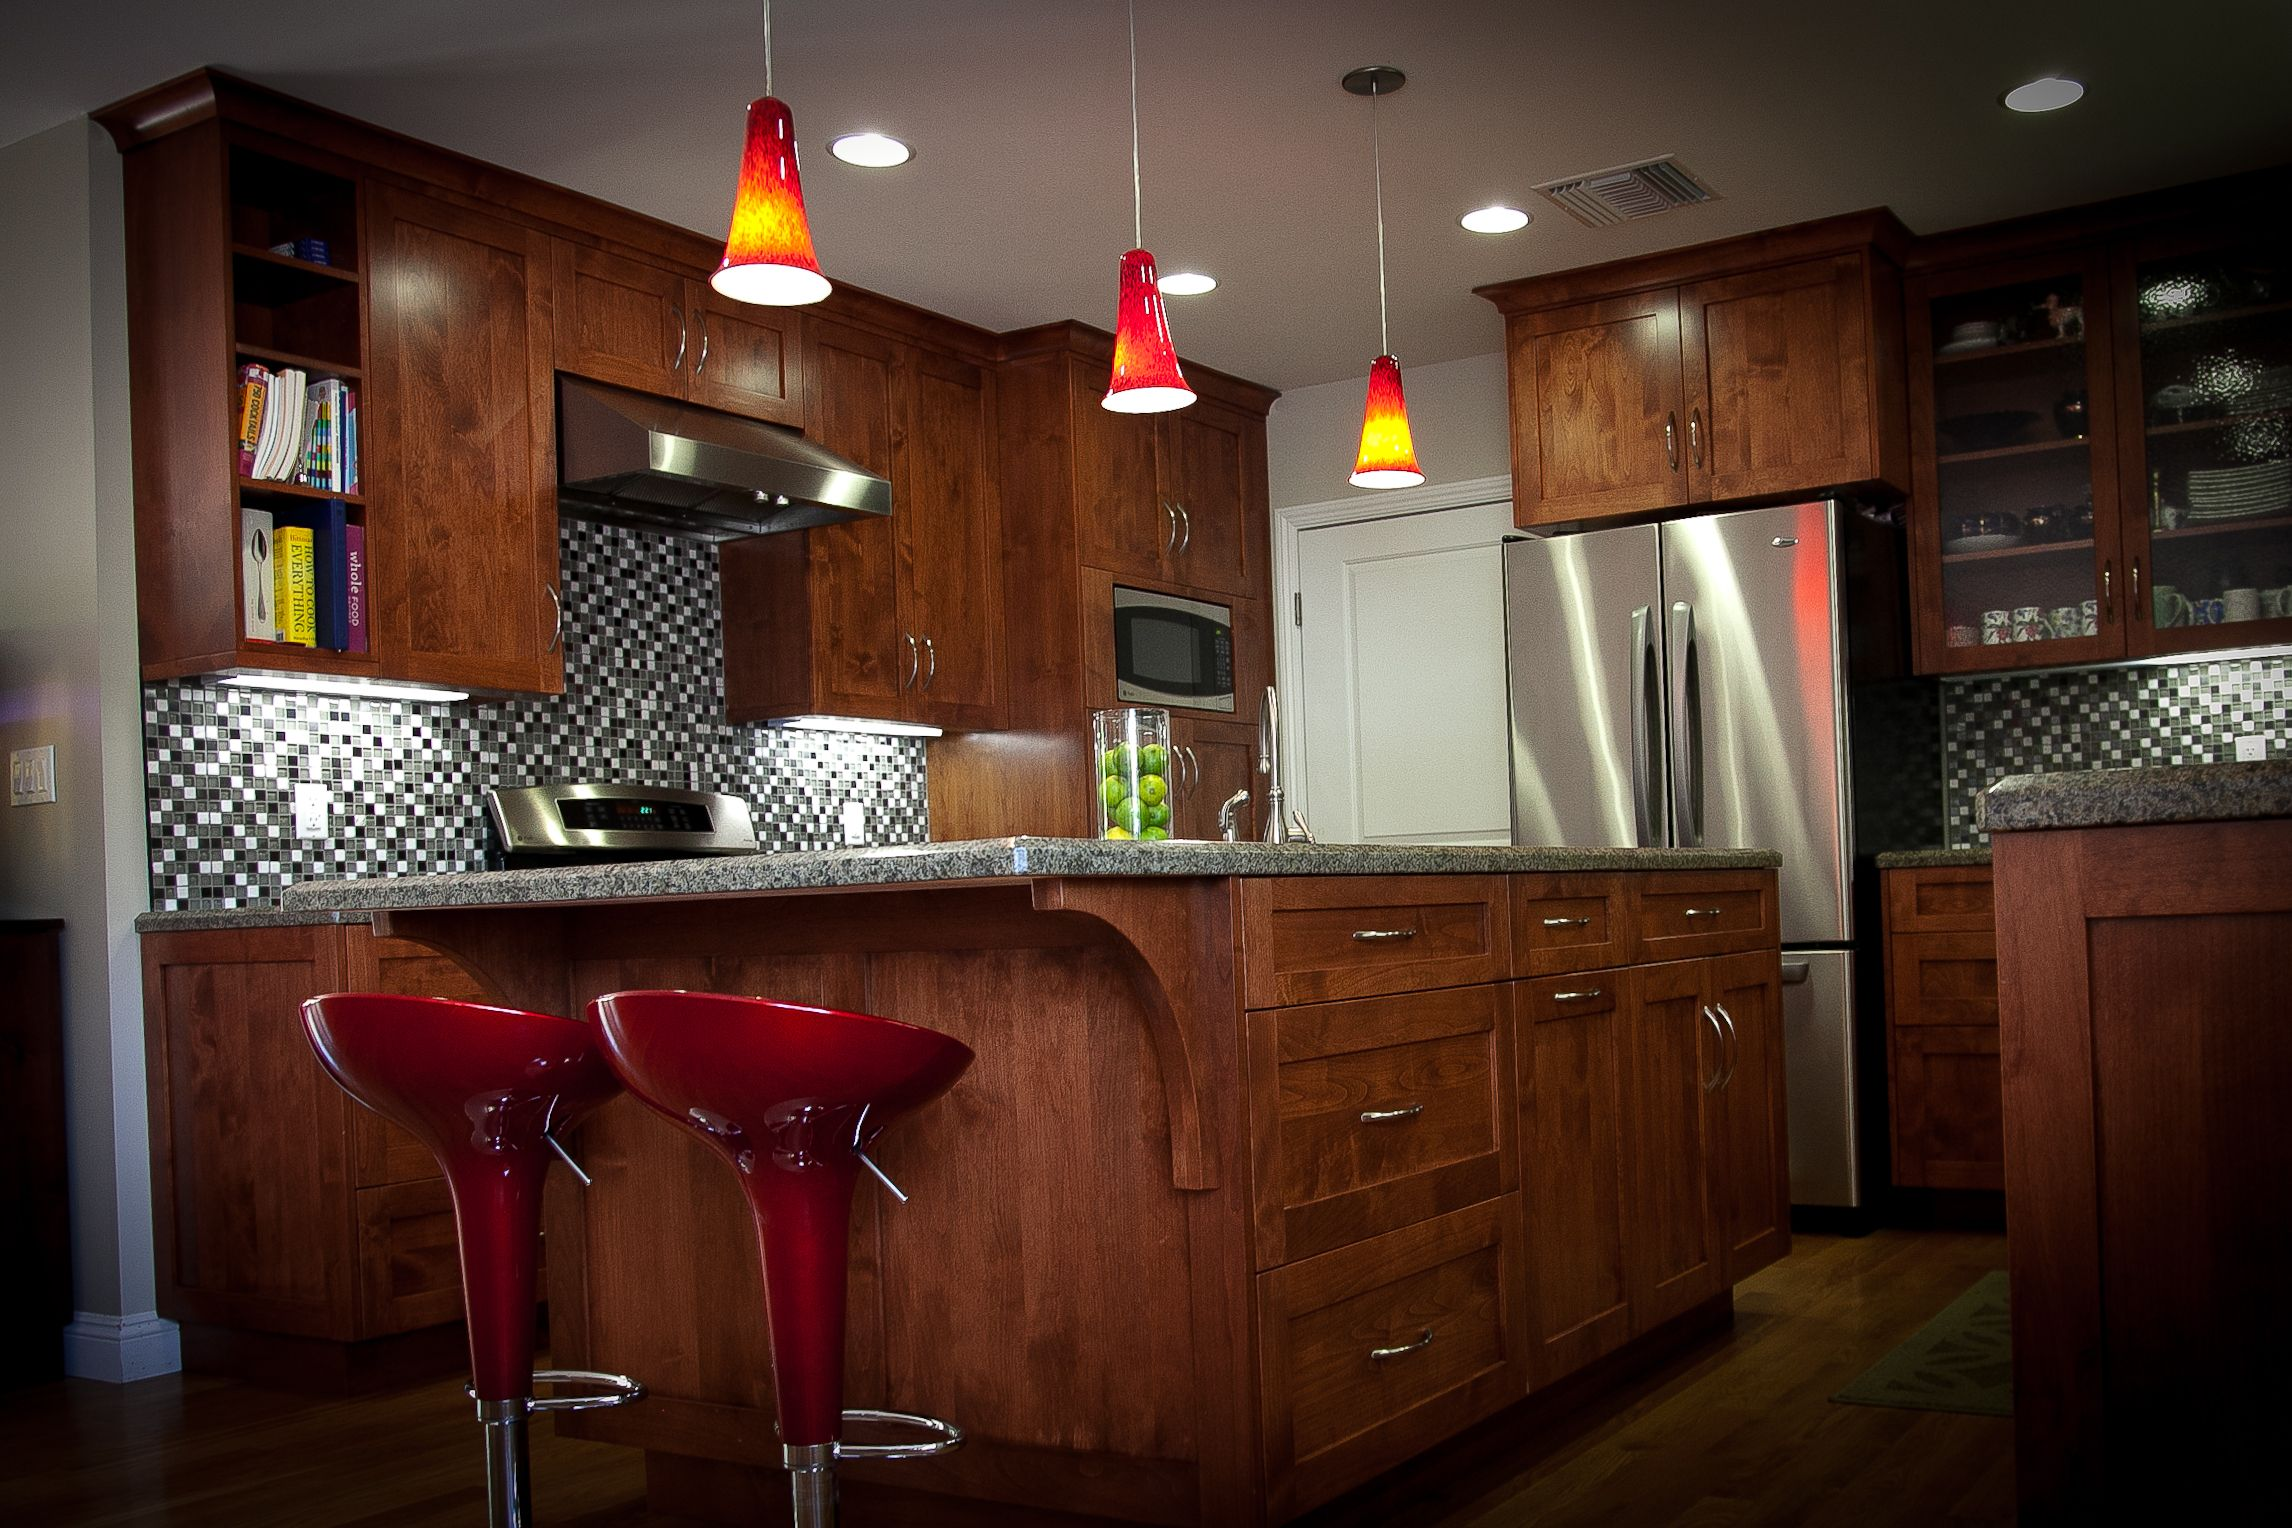 Cabinetry in Los Angeles | Home renovation, Cabinetry ...